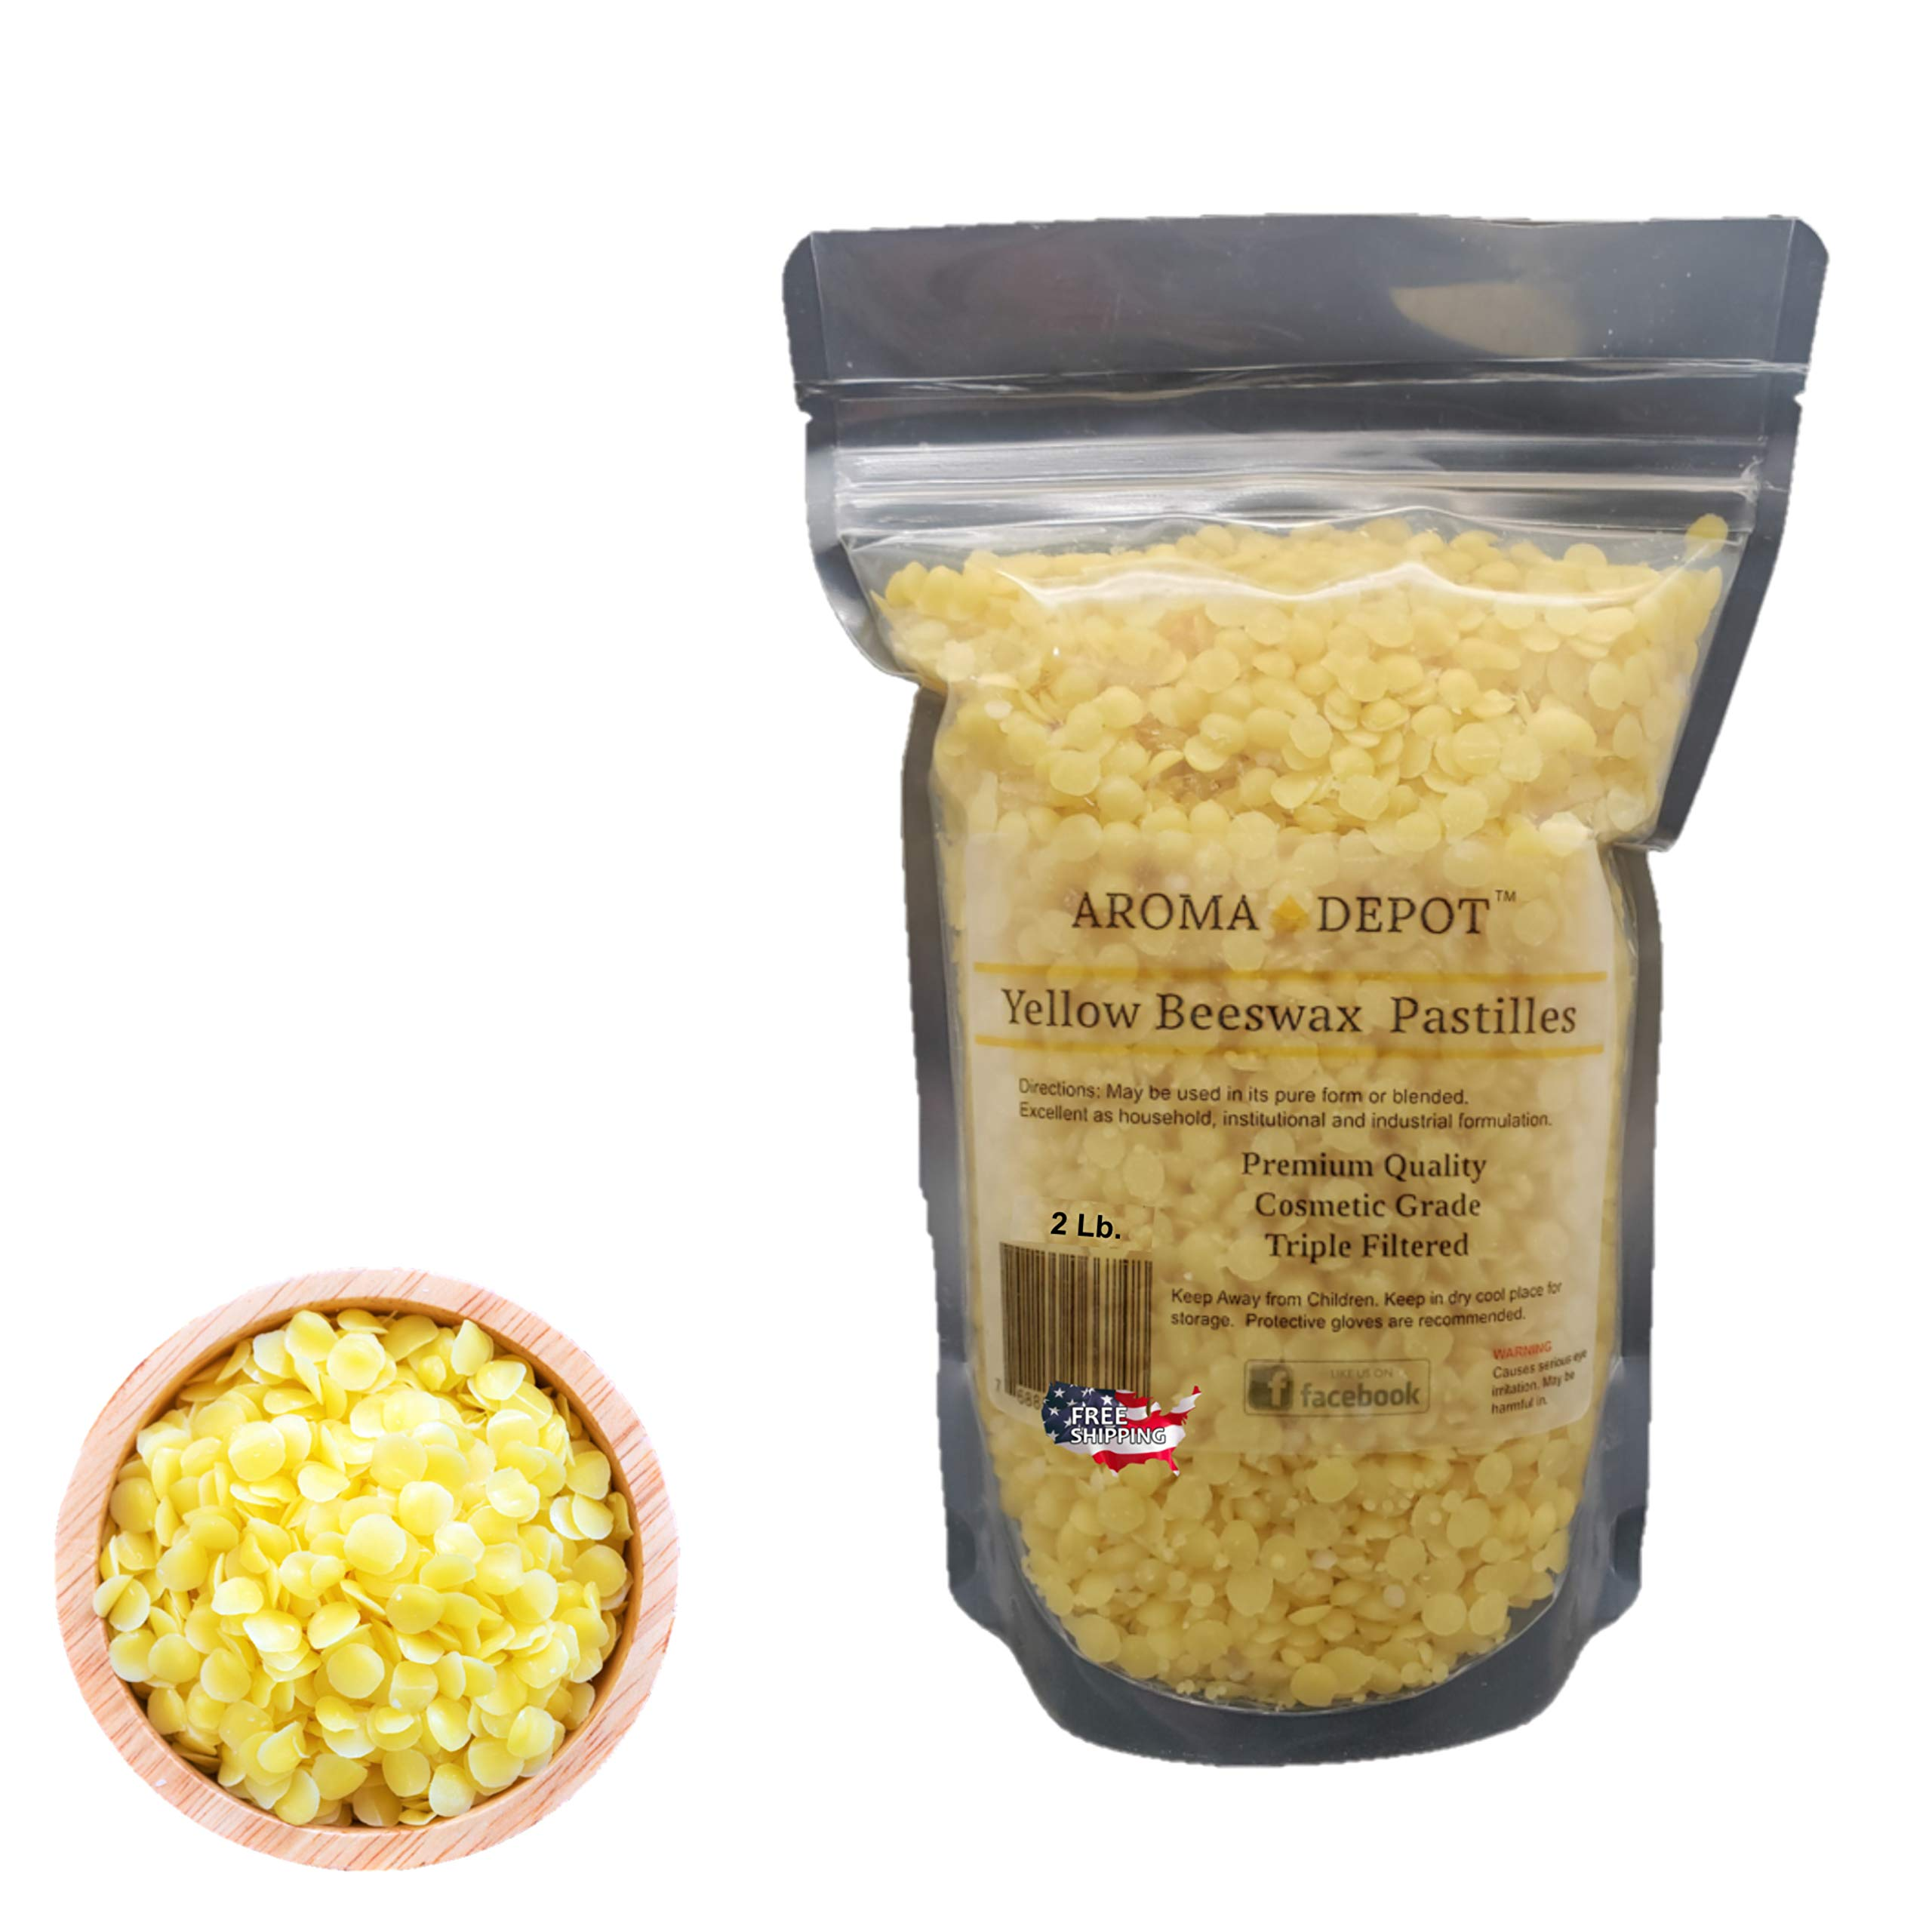 Aroma Depot 2lb / 32oz Yellow Beeswax Pellets 100% Natural Pure Bees Wax 3 x Filtered, Great for Skin, Face & Body, Ideal for DIY, Lotion, Creams, Soaps, Lip Balm and Candle Making Supplies. Easy Melt